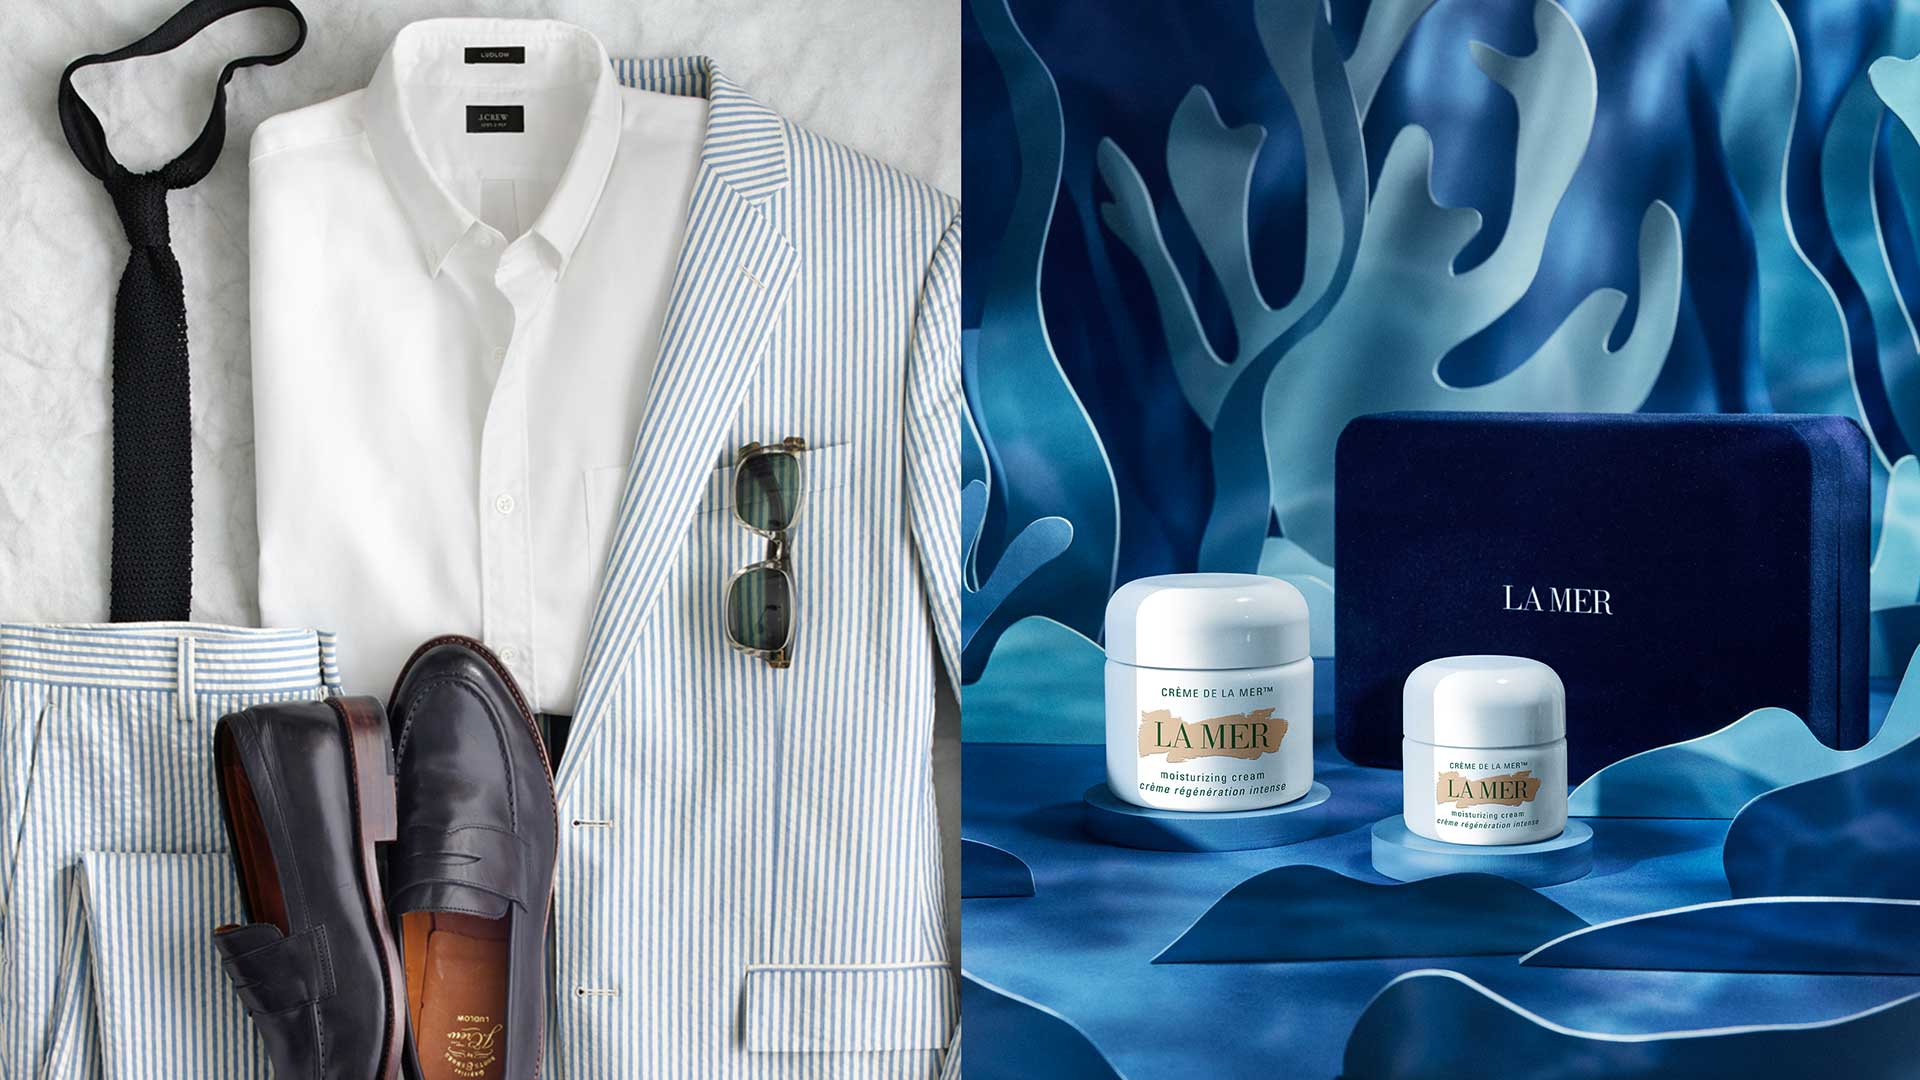 diptych of formal clothes to the left, and La Mer packaging design on the right